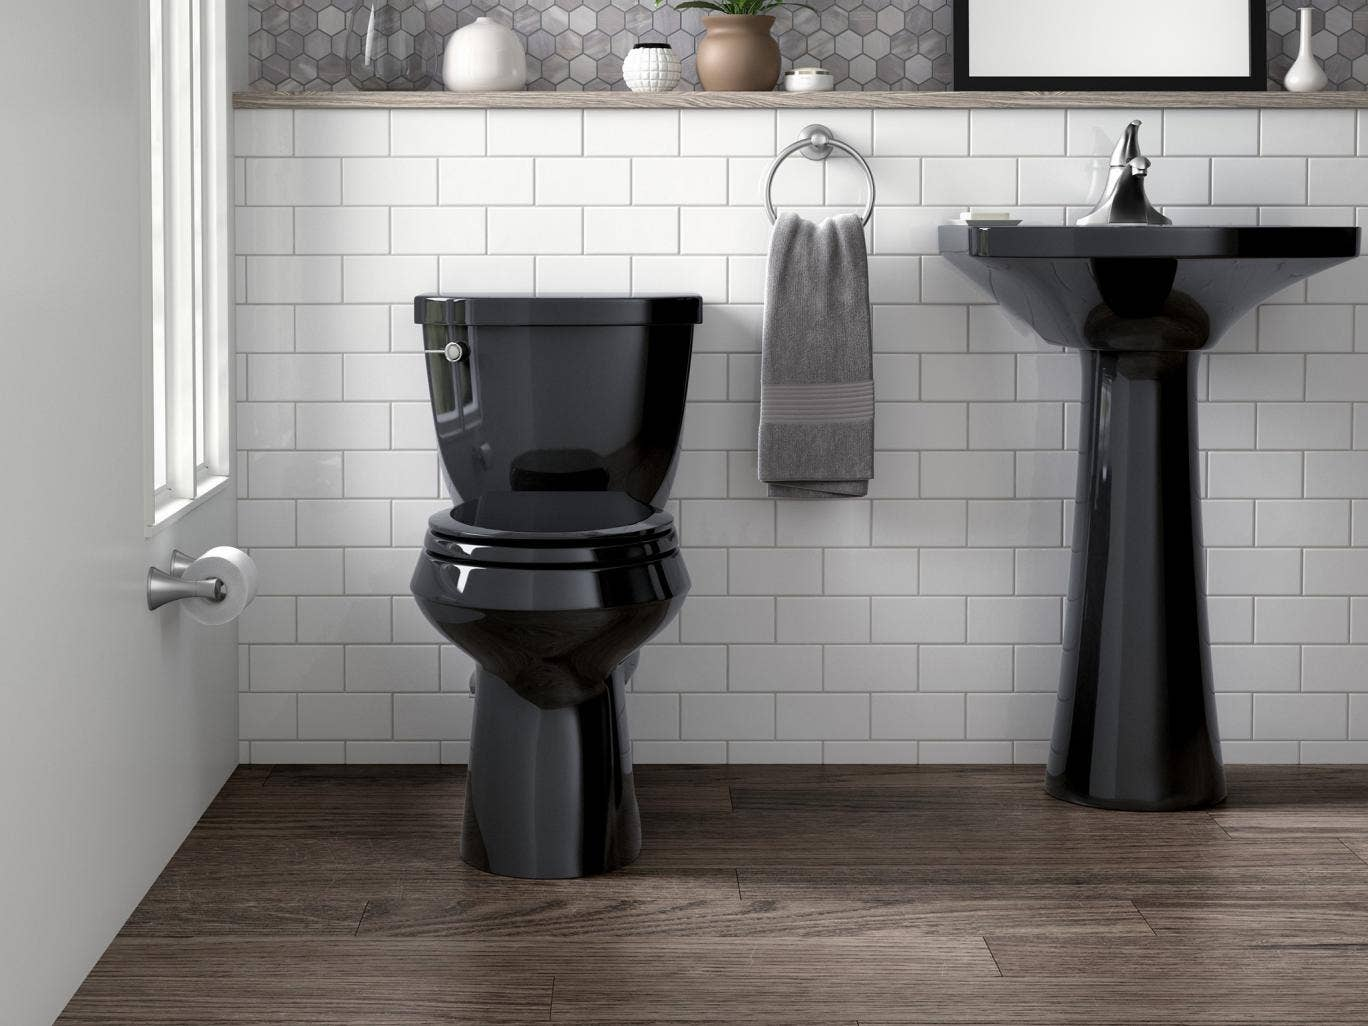 India is on the greatest toilet-building spree in history ... on master bathroom designs, outdoor stone fireplace designs, surround sound designs, bathroom tub designs, dining room designs, exterior brick wall designs, gym designs, lounge designs, tv room designs, pool designs, smart house designs, best small bathroom designs, garage designs, pantry designs, outdoor bath house designs, hot tub designs, living room designs, modern outdoor fireplace designs, dressing room designs, floors designs,